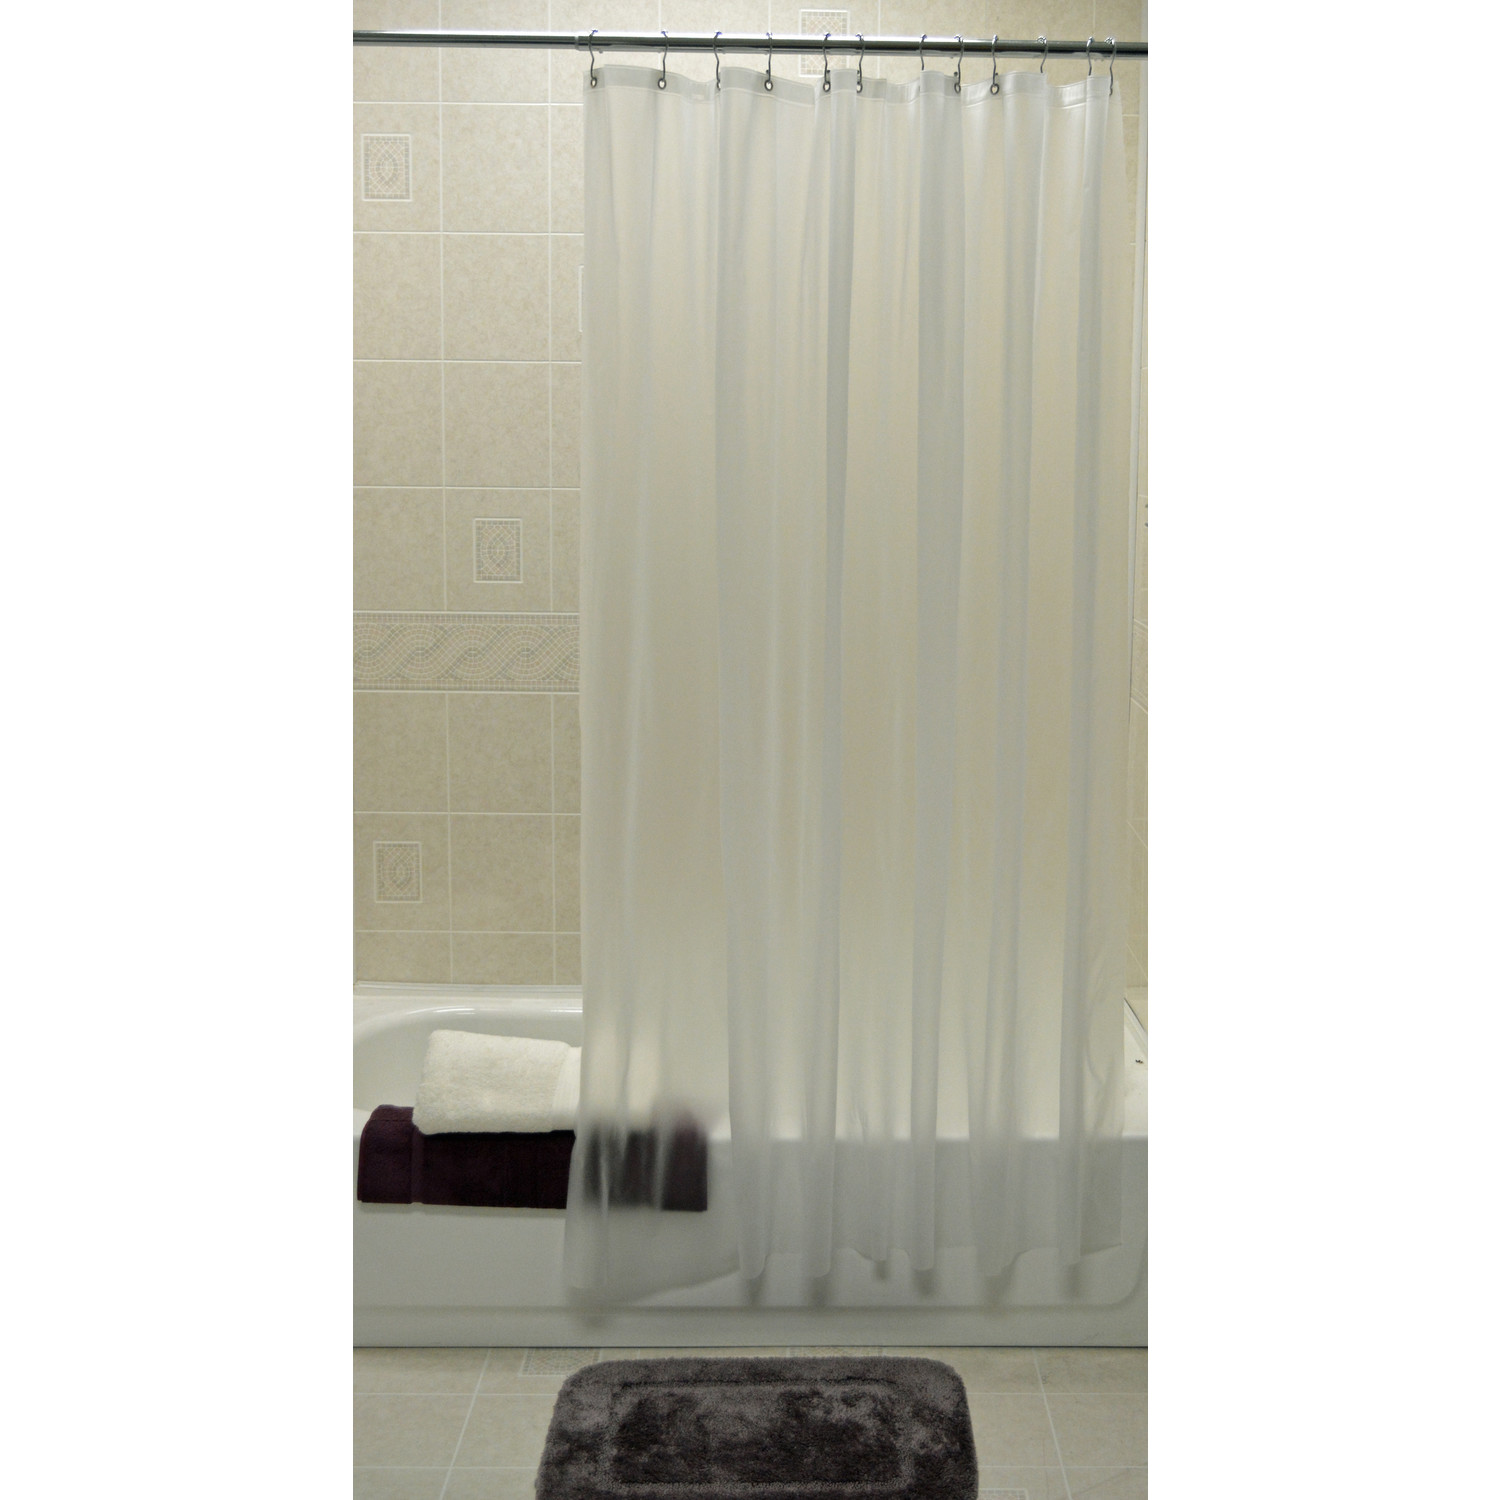 kartri shower curtain liner p free